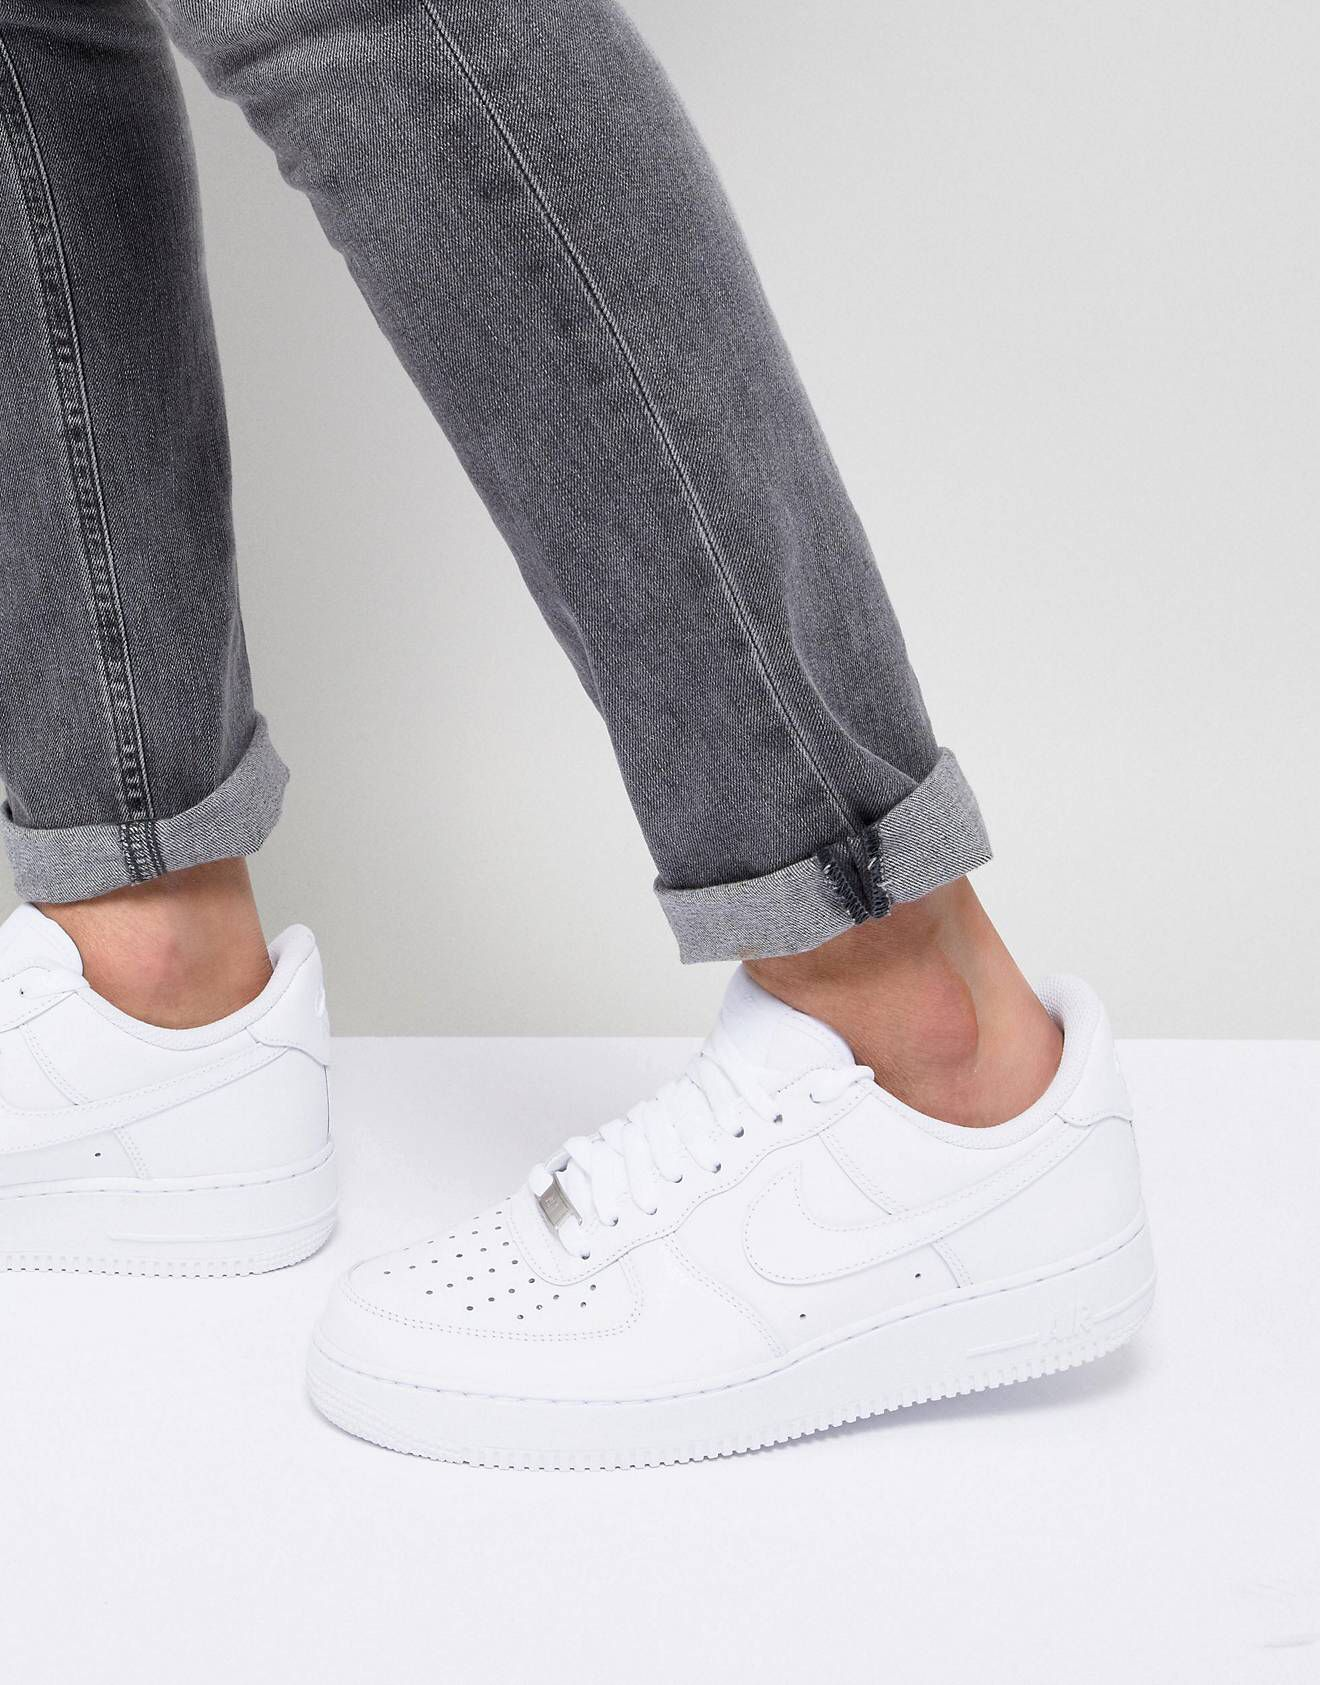 Nike air force 1 outfit, Nike shoes